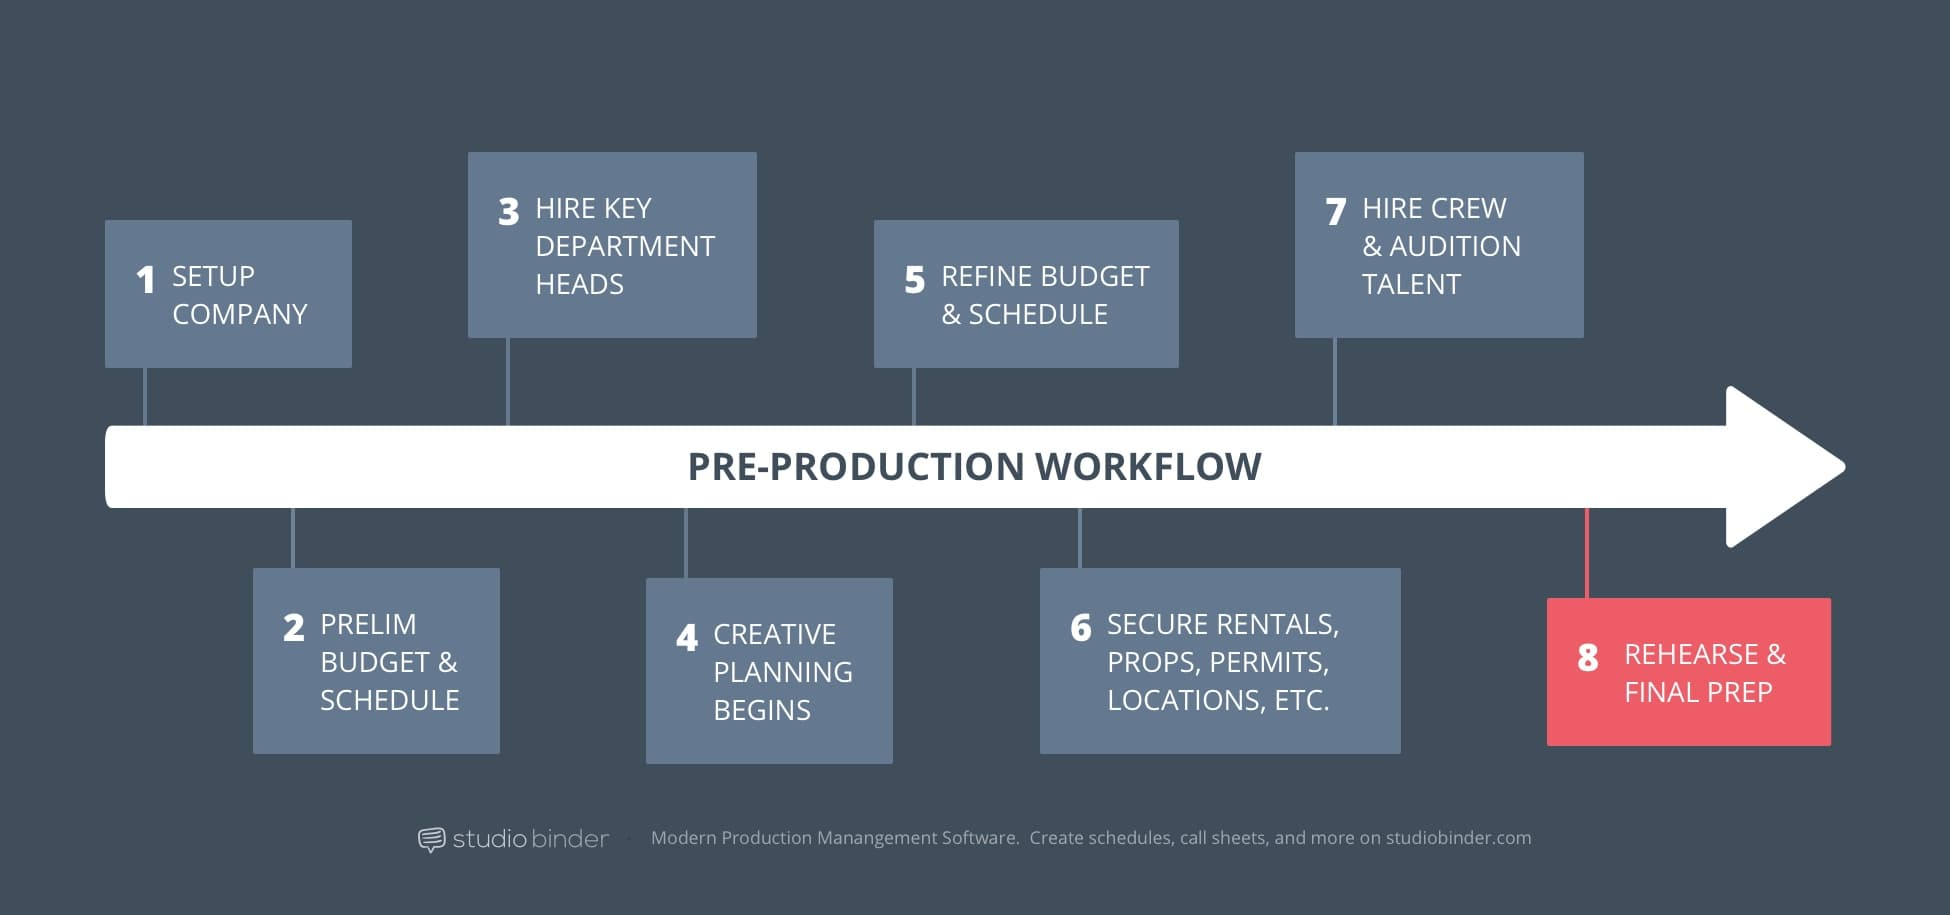 8 – StudioBinder Pre-Production Workflow – Rehearse and Final Prep